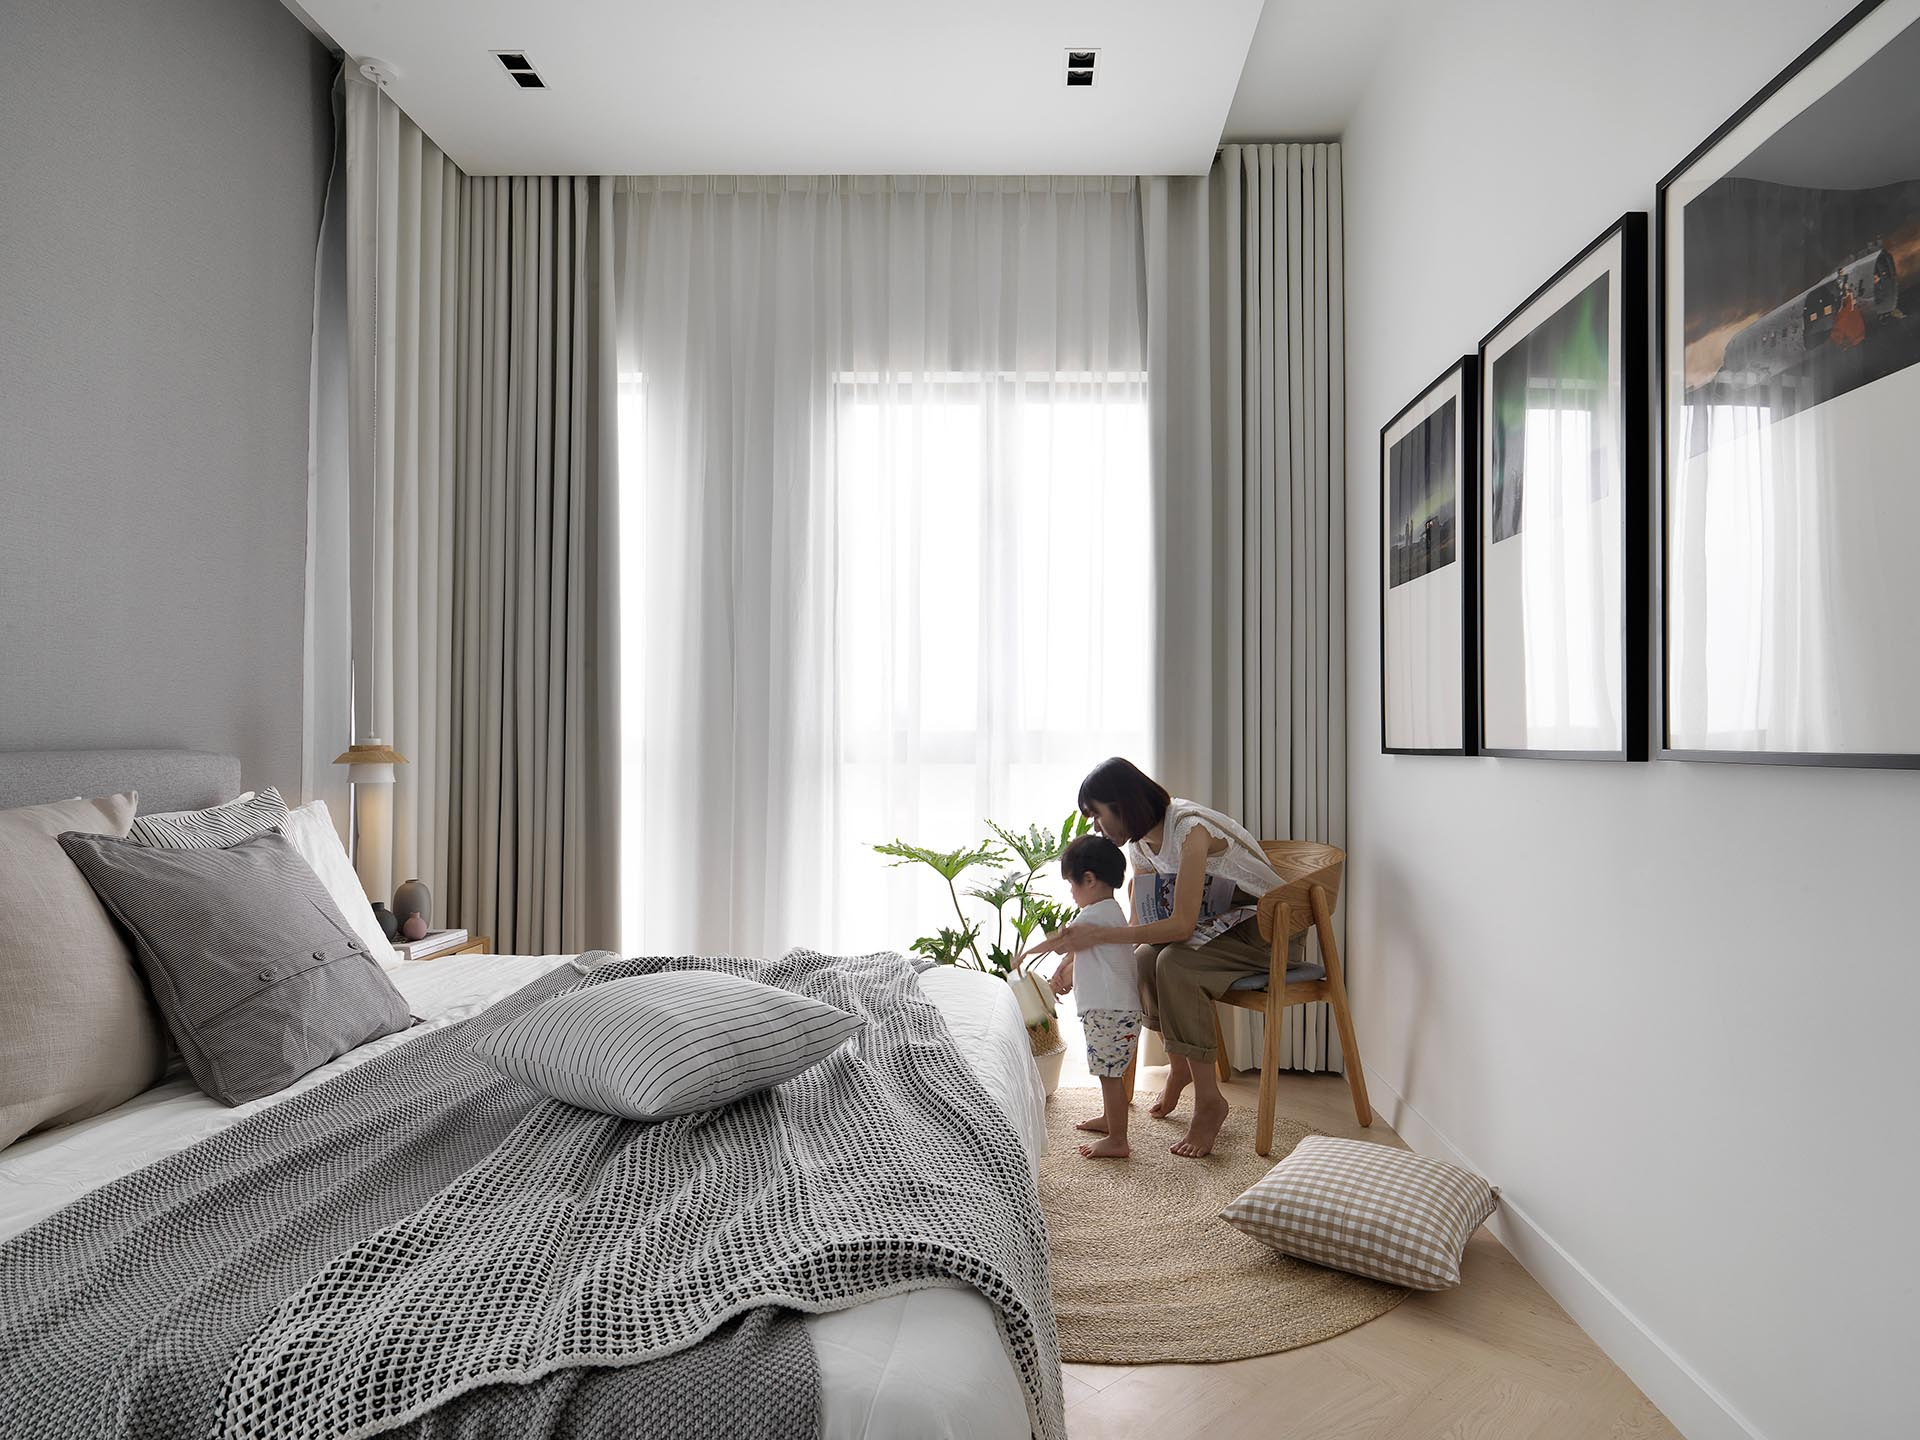 Herringbone wood flooring, neutral colors, natural fibers, and plants create a calm environment for the bedroom.